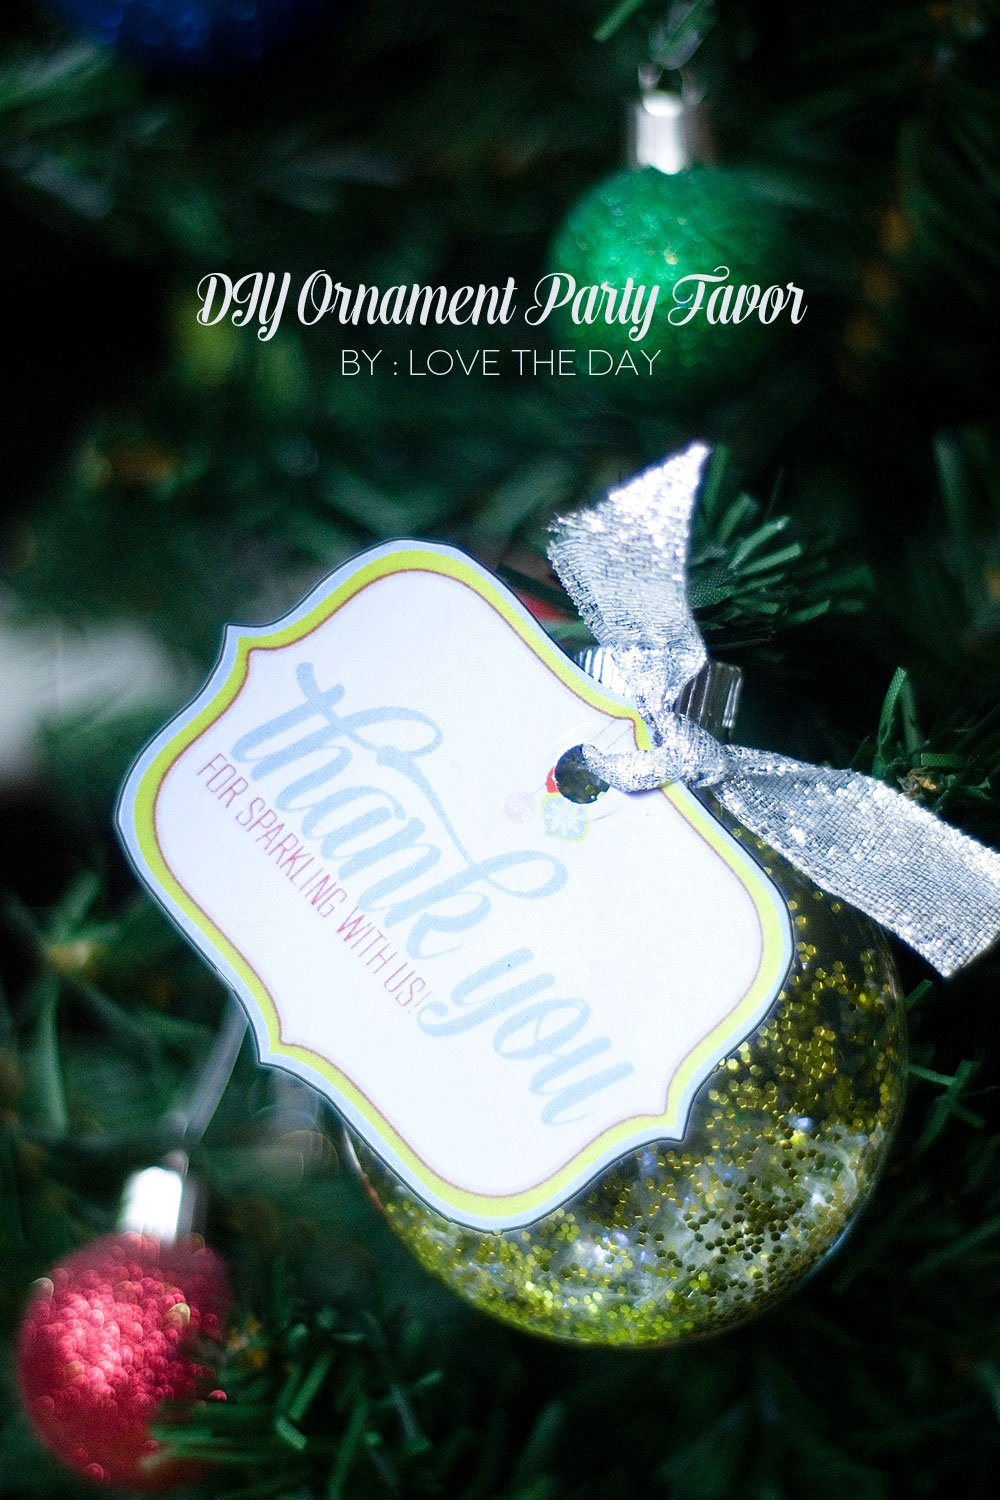 handmade photo ornament ideas - Handmade Holiday DIY Party Decorations Frog Prince Paperie